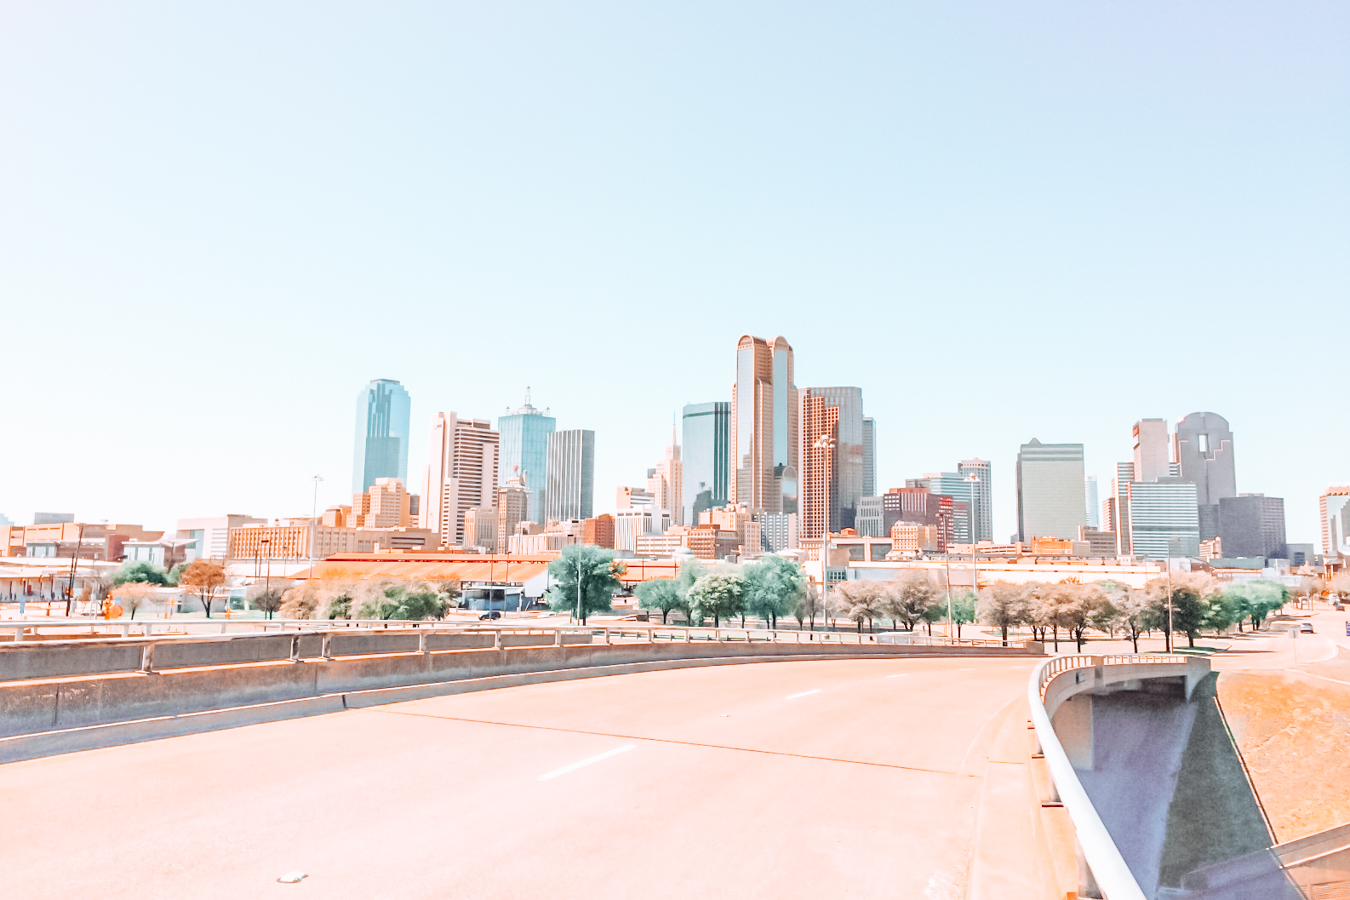 Road and buildings in Dallas